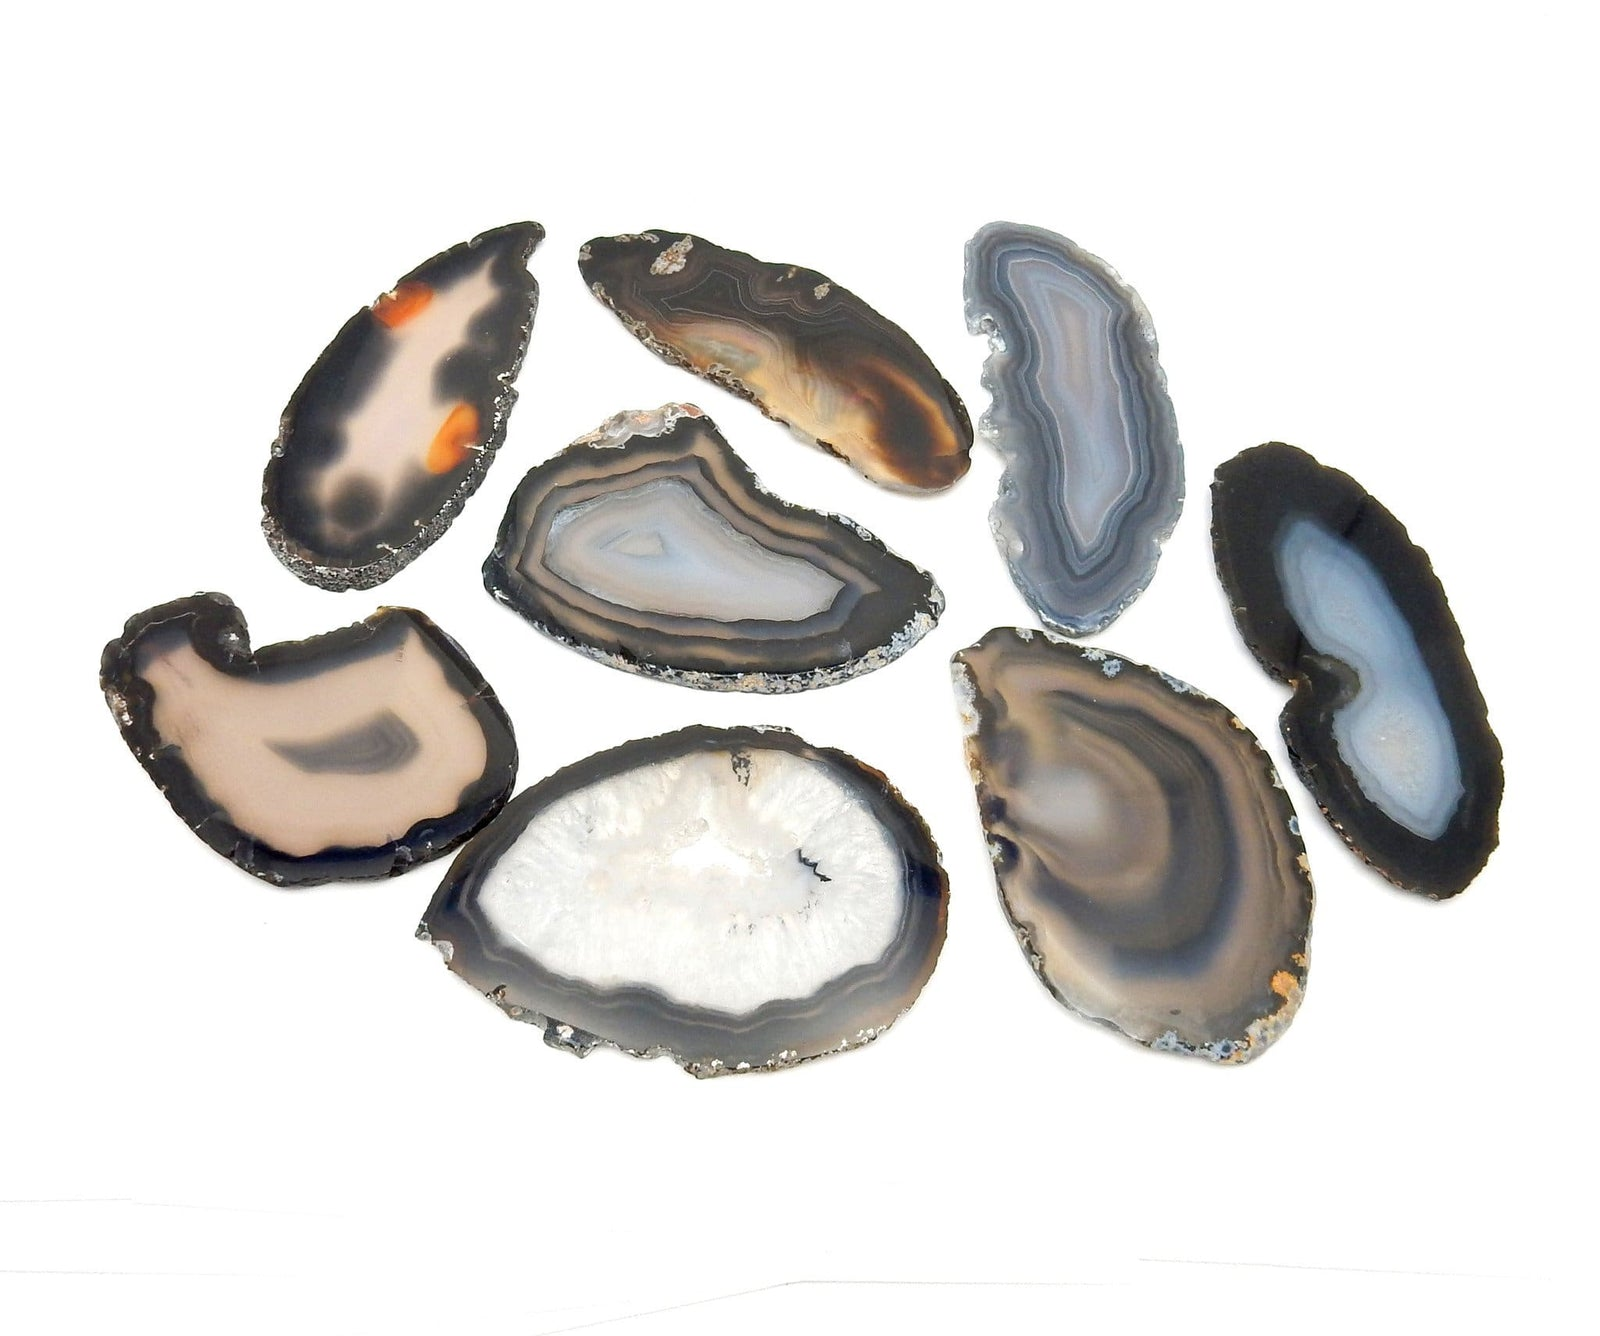 Agate Slices - Black Agate Slice - Large Pendant Size - Agate Slices #0 - Great For Jewelry (AGBS)